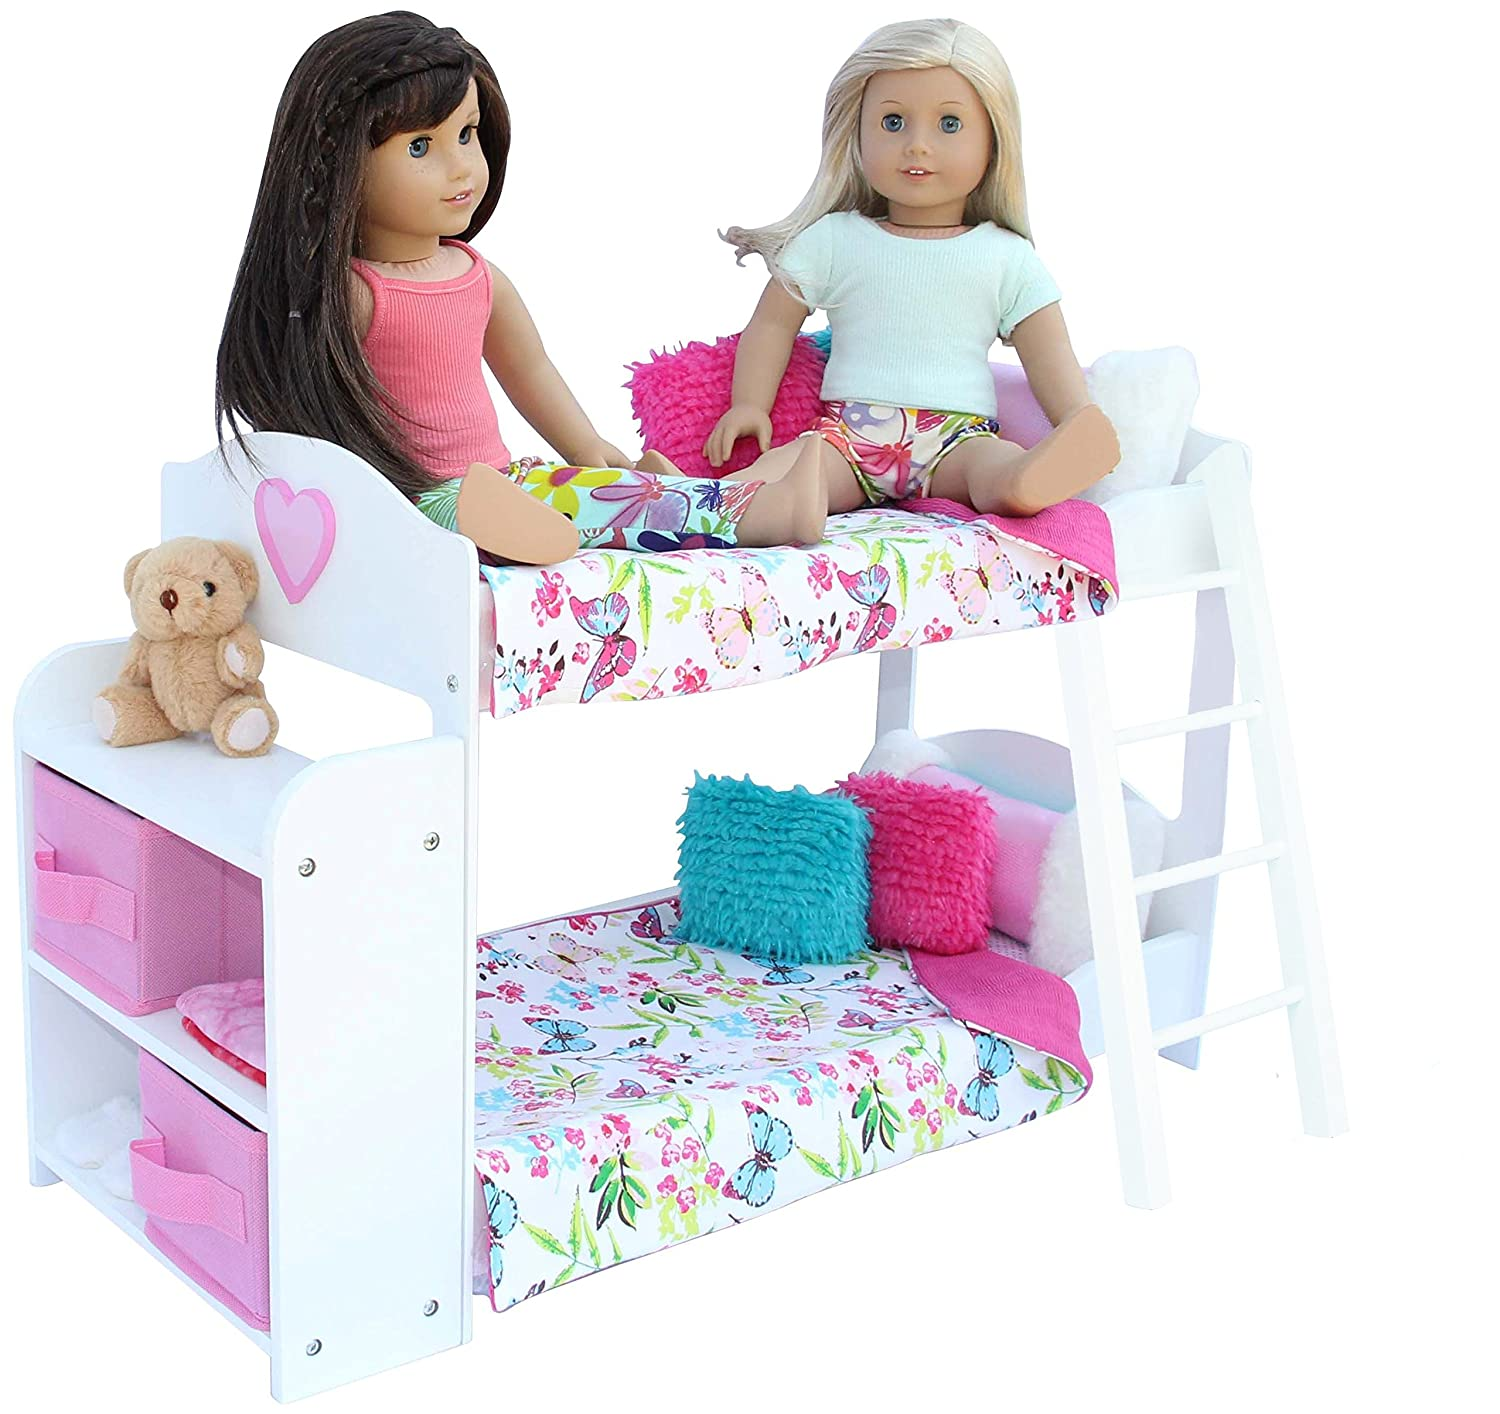 20 Pc. Doll Bedroom Set for 18 Inch American Girl Doll. Includes: Bunk Bed, Bookshelf, x2 Bedding Sets, x2 Pajama Sets and more... PZAS Toys